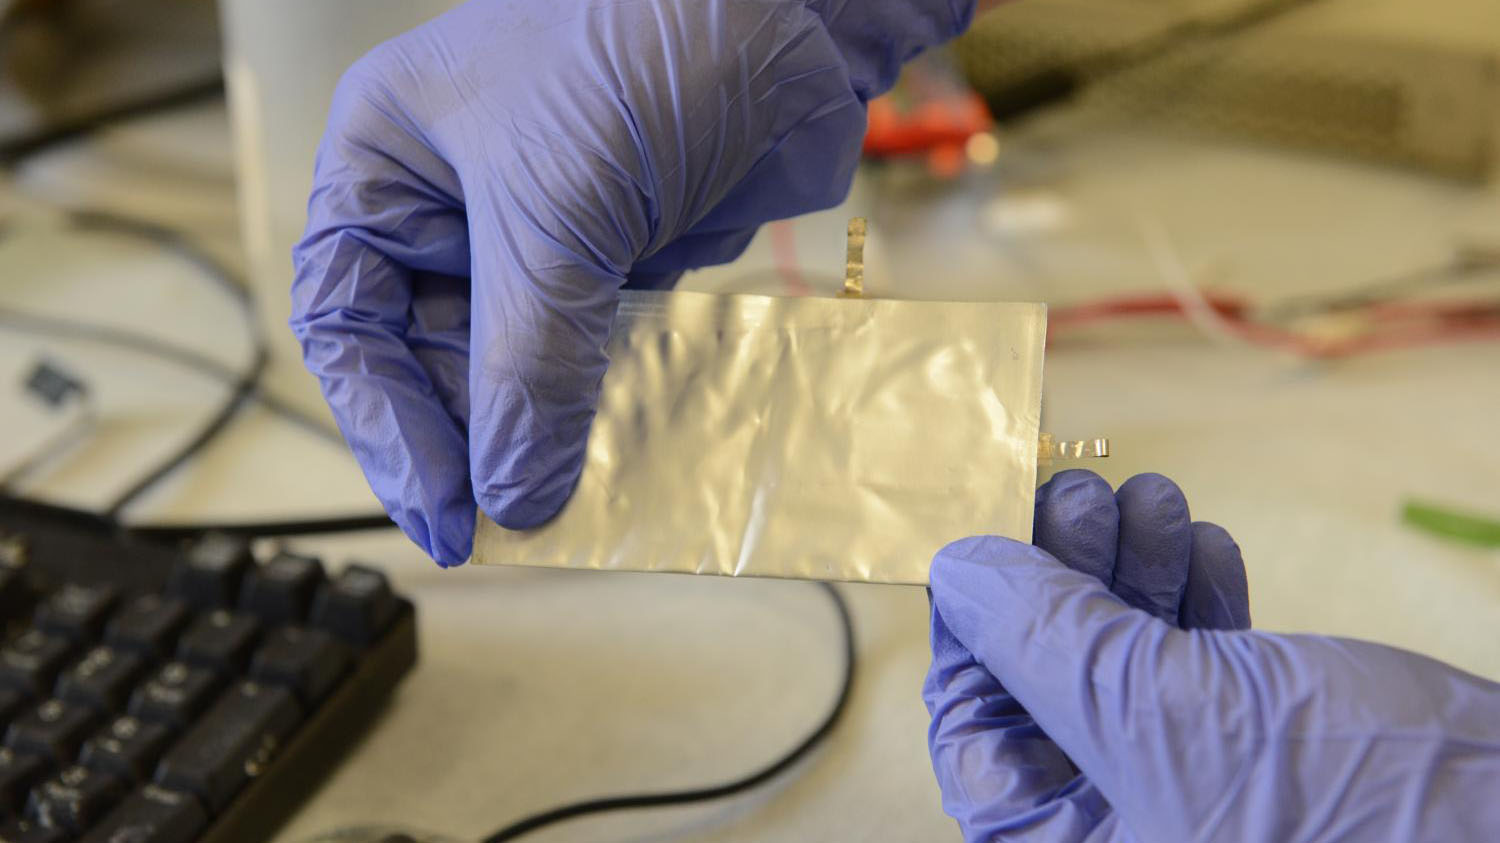 A new phone battery that can charge in 1 minute?